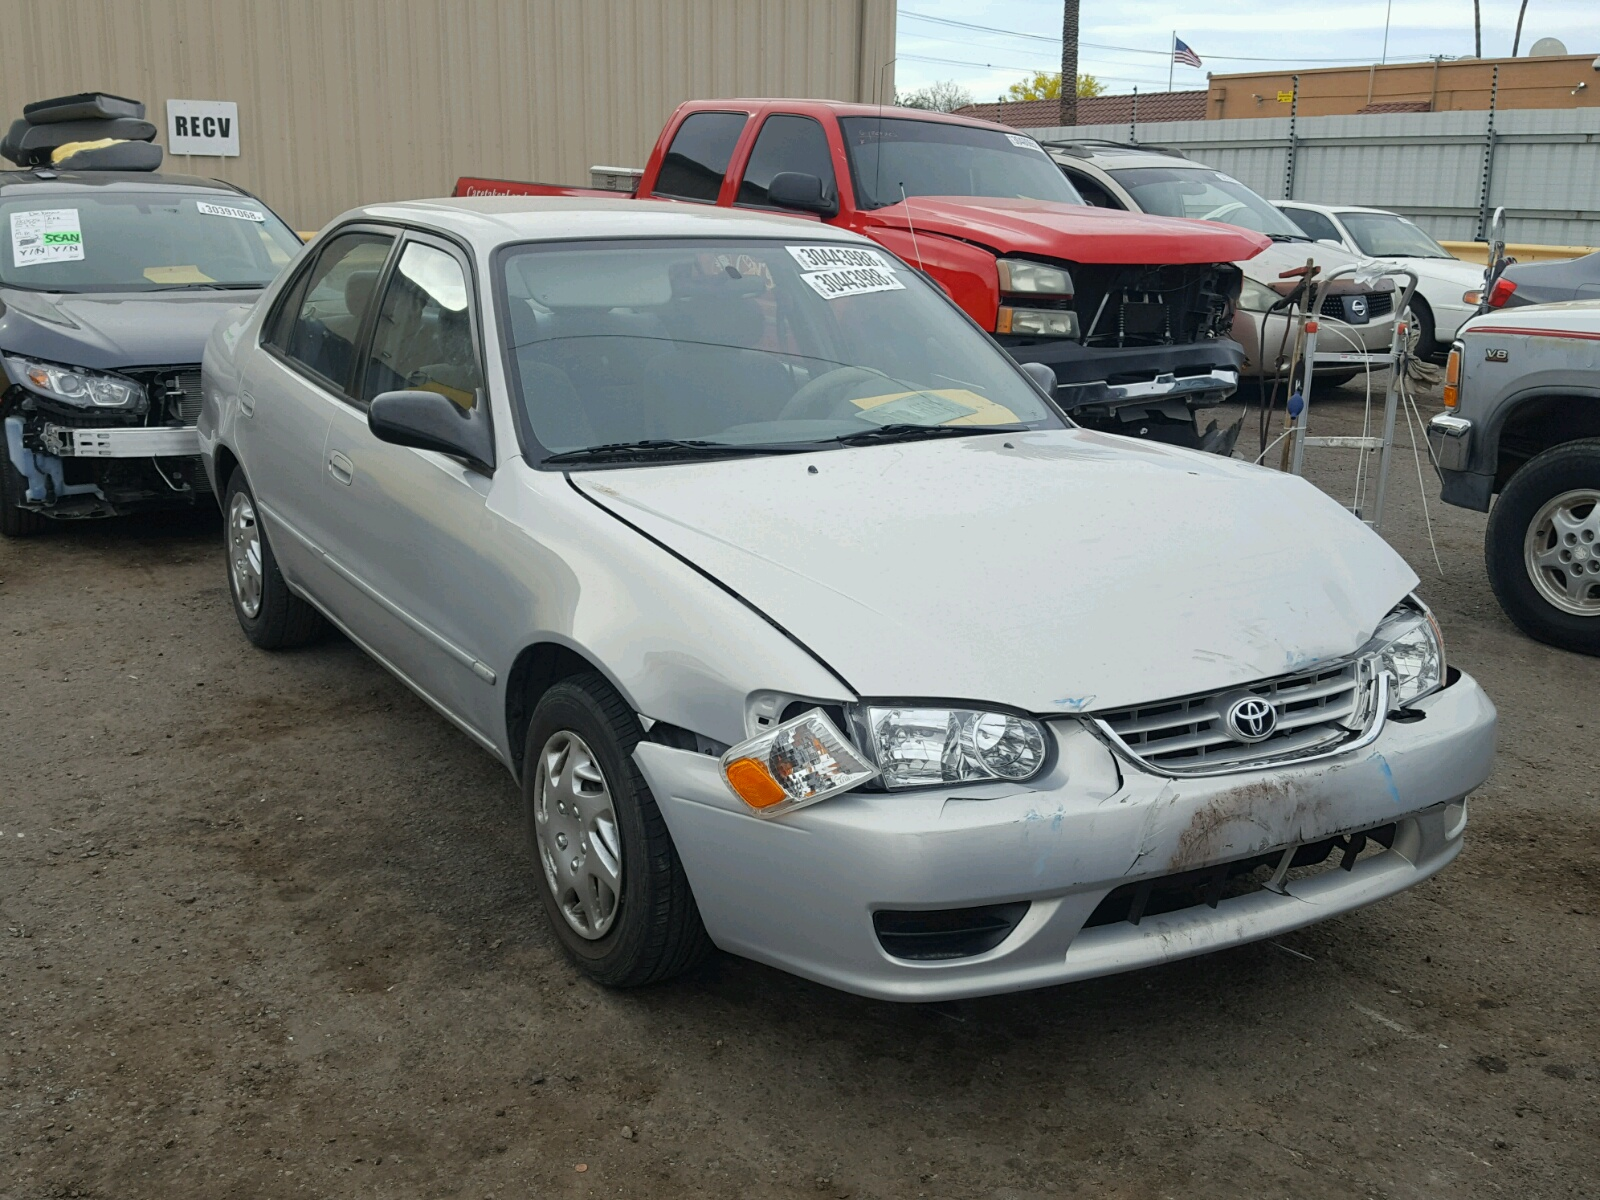 Auto Auction Ended on VIN 4T4BE46K99R 2009 TOYOTA CAMRY BASE